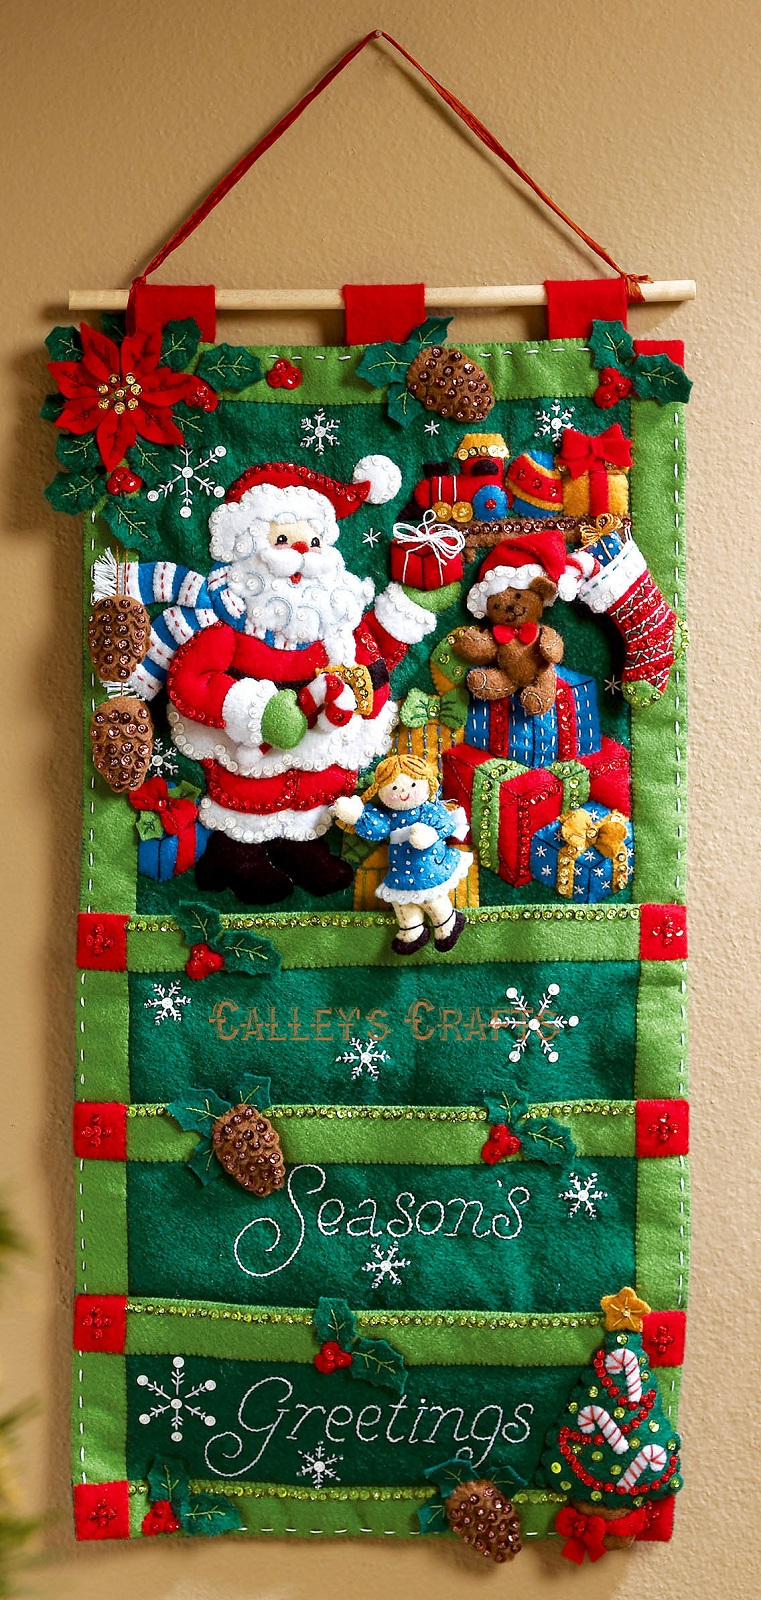 Bucilla Santas Greeting Card Holder Christmas Felt Wall Hanging